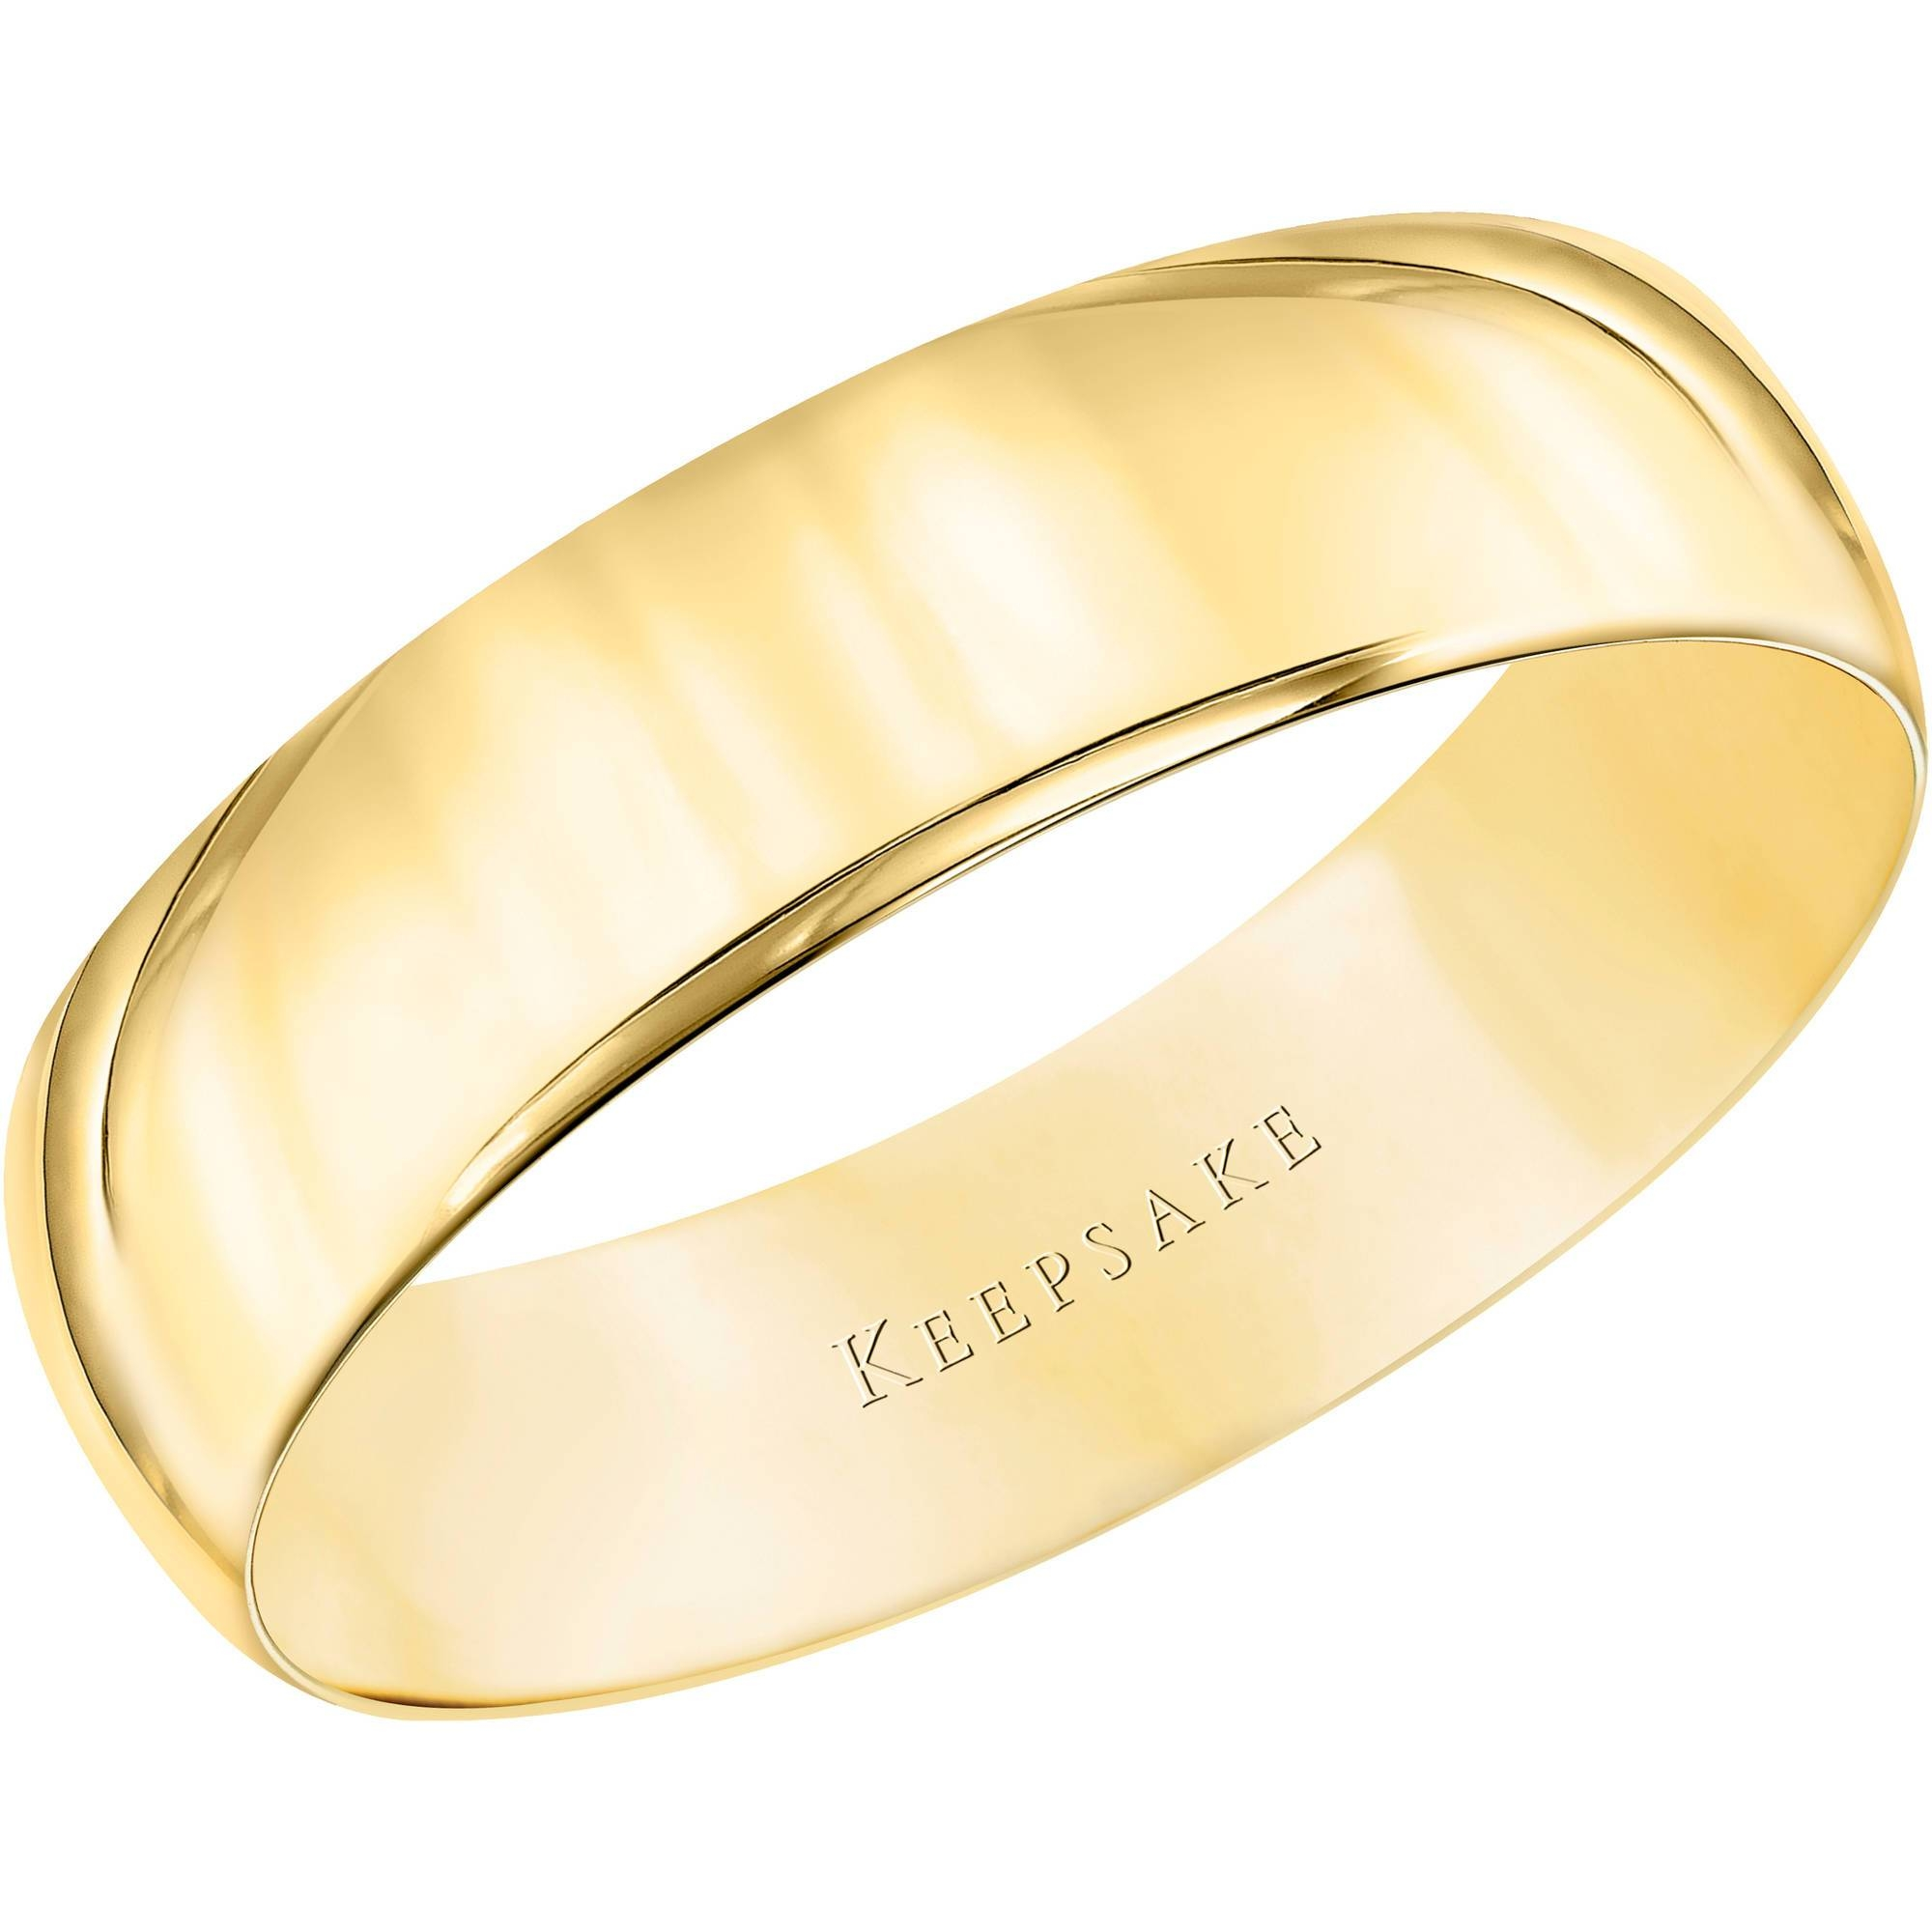 Keepsake 10Kt Yellow Gold Wedding Band With High Polish Finish With White Gold Wedding Bands Rings (View 11 of 15)